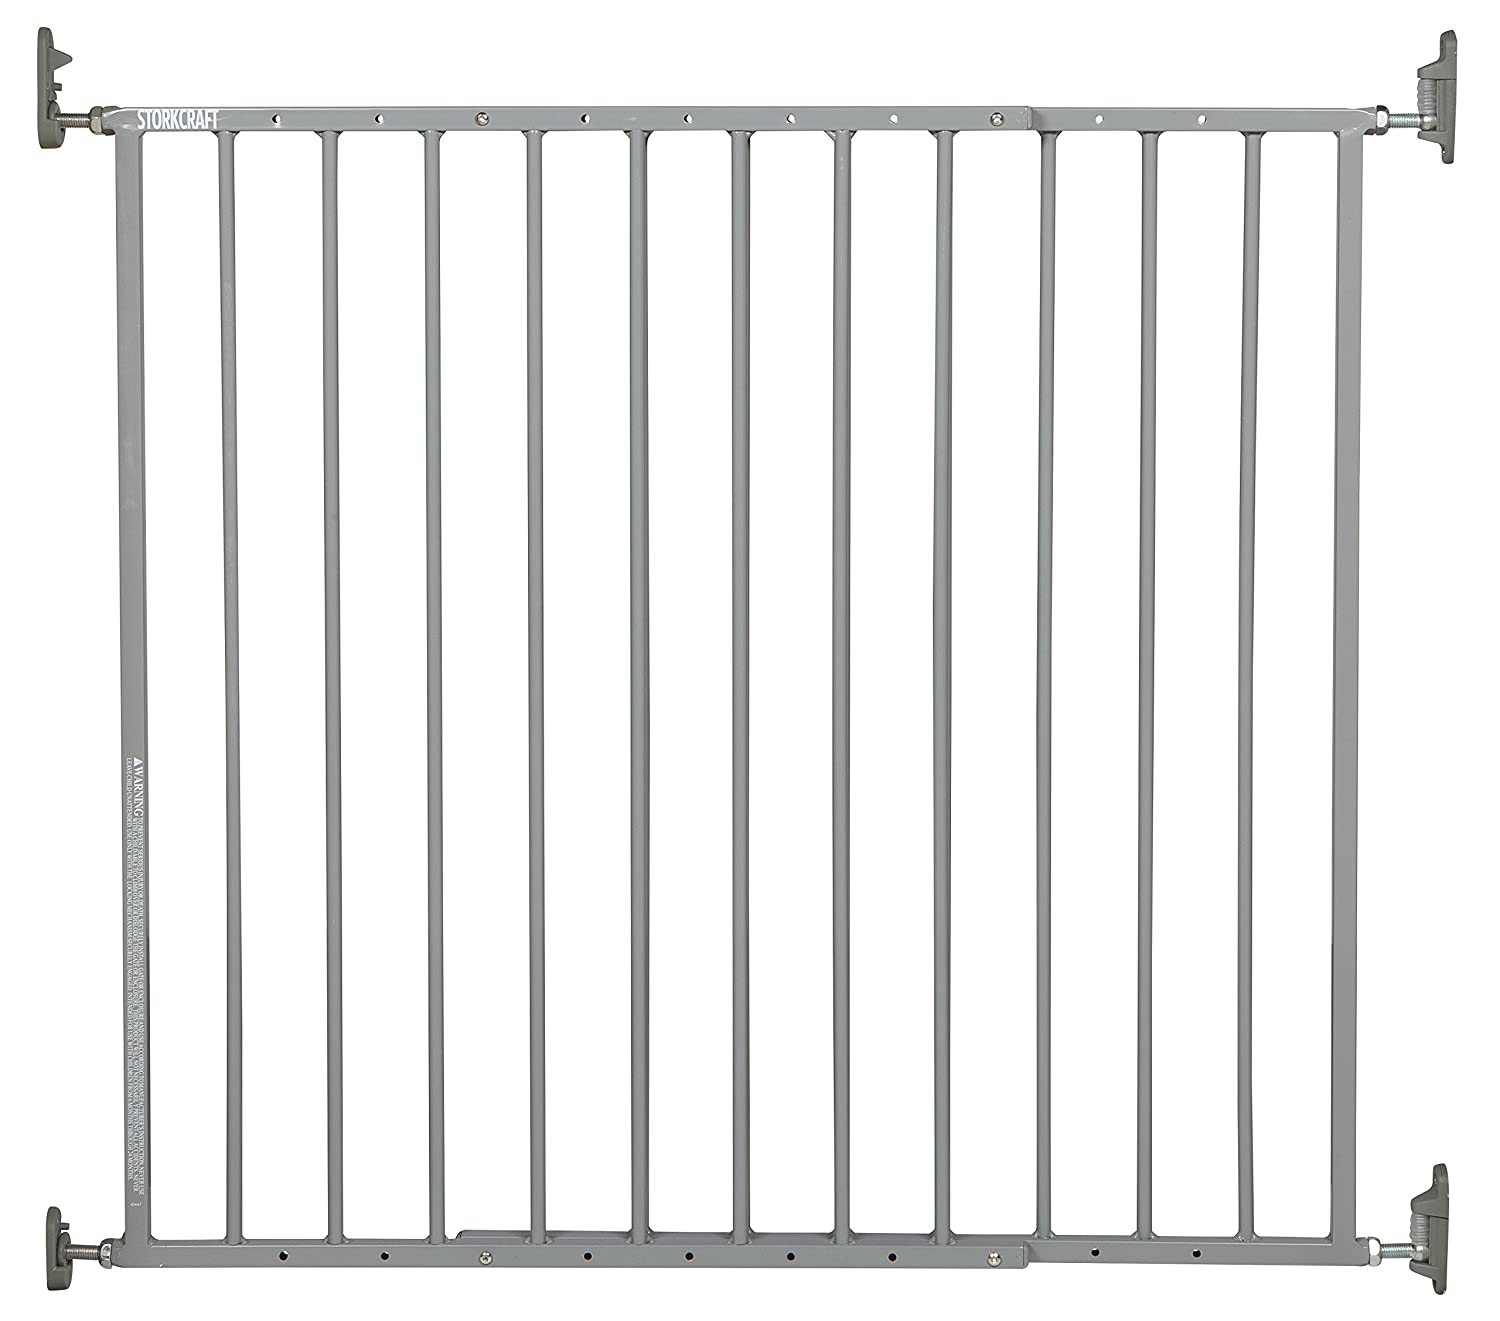 Storkcraft Easy Walk-Thru Adjustable Width 28.3' - 45.98' Metal Safety Gate for Baby Dog Cat or Other Pets with One-Hand Quick-Release Lock, Black, 29' Tall 29 Tall Stork Craft 01740-02B